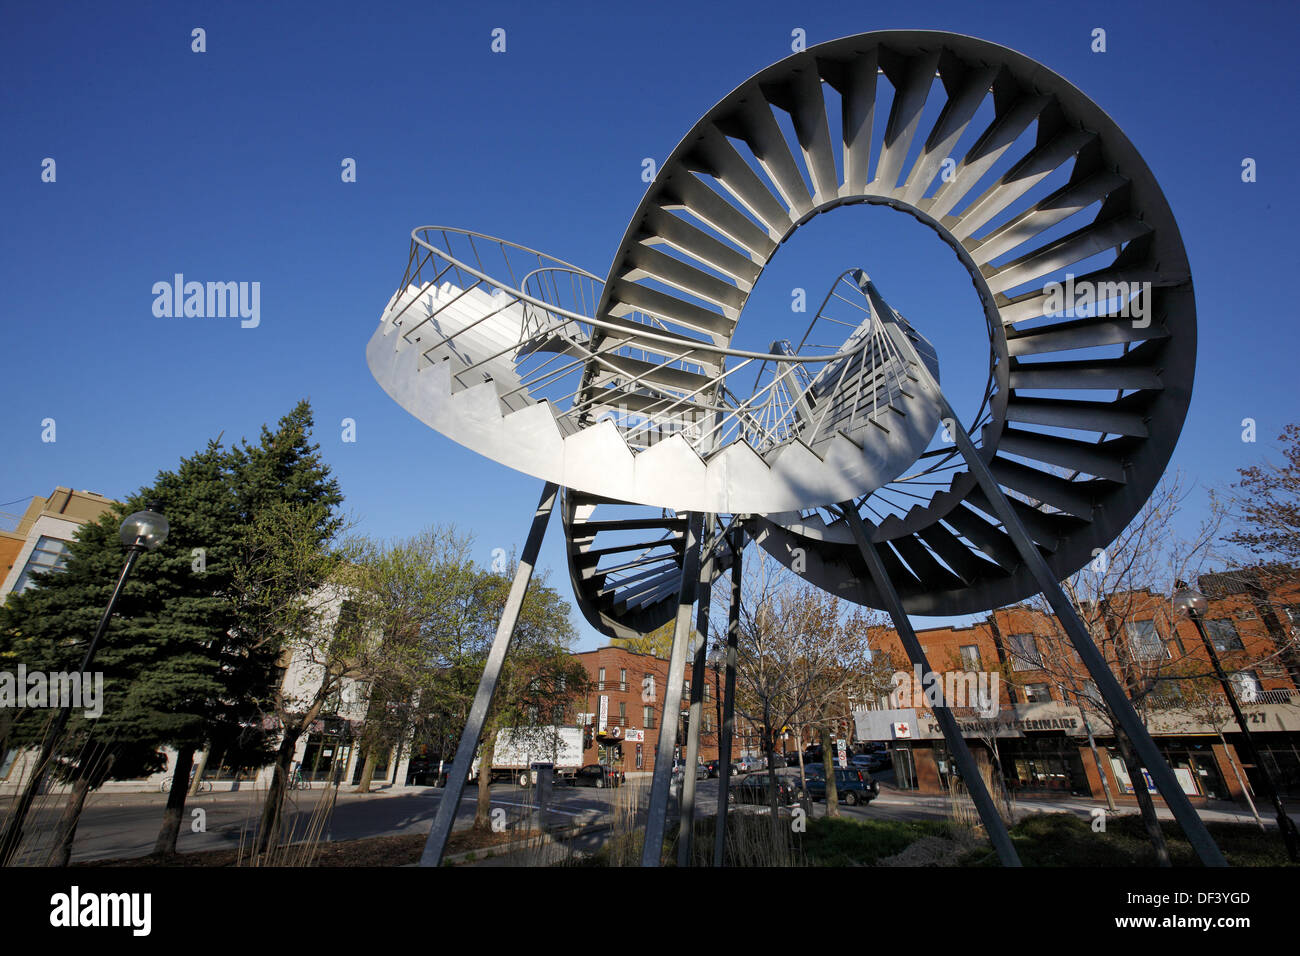 ´Révolutions´ sculpture by Michel de Broin at Papineau metro station, Montreal, Quebec, Canada - Stock Image